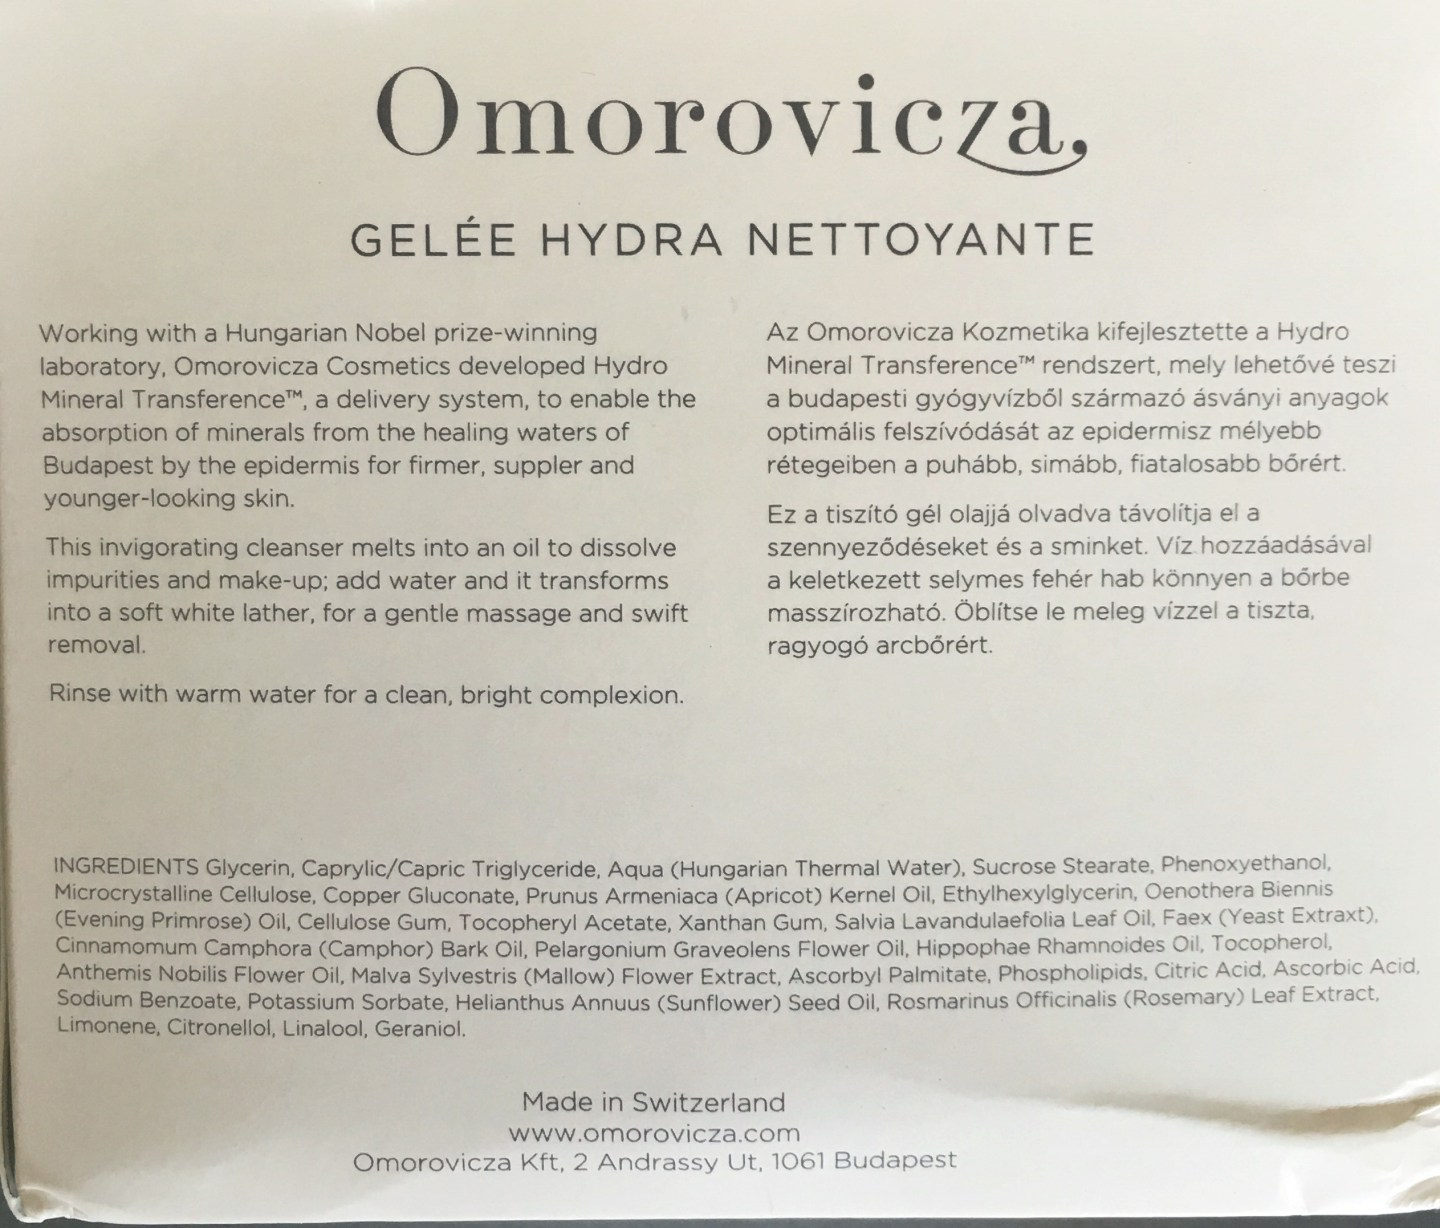 Omorovicza Hydra Melting Cleanser Ingredients List